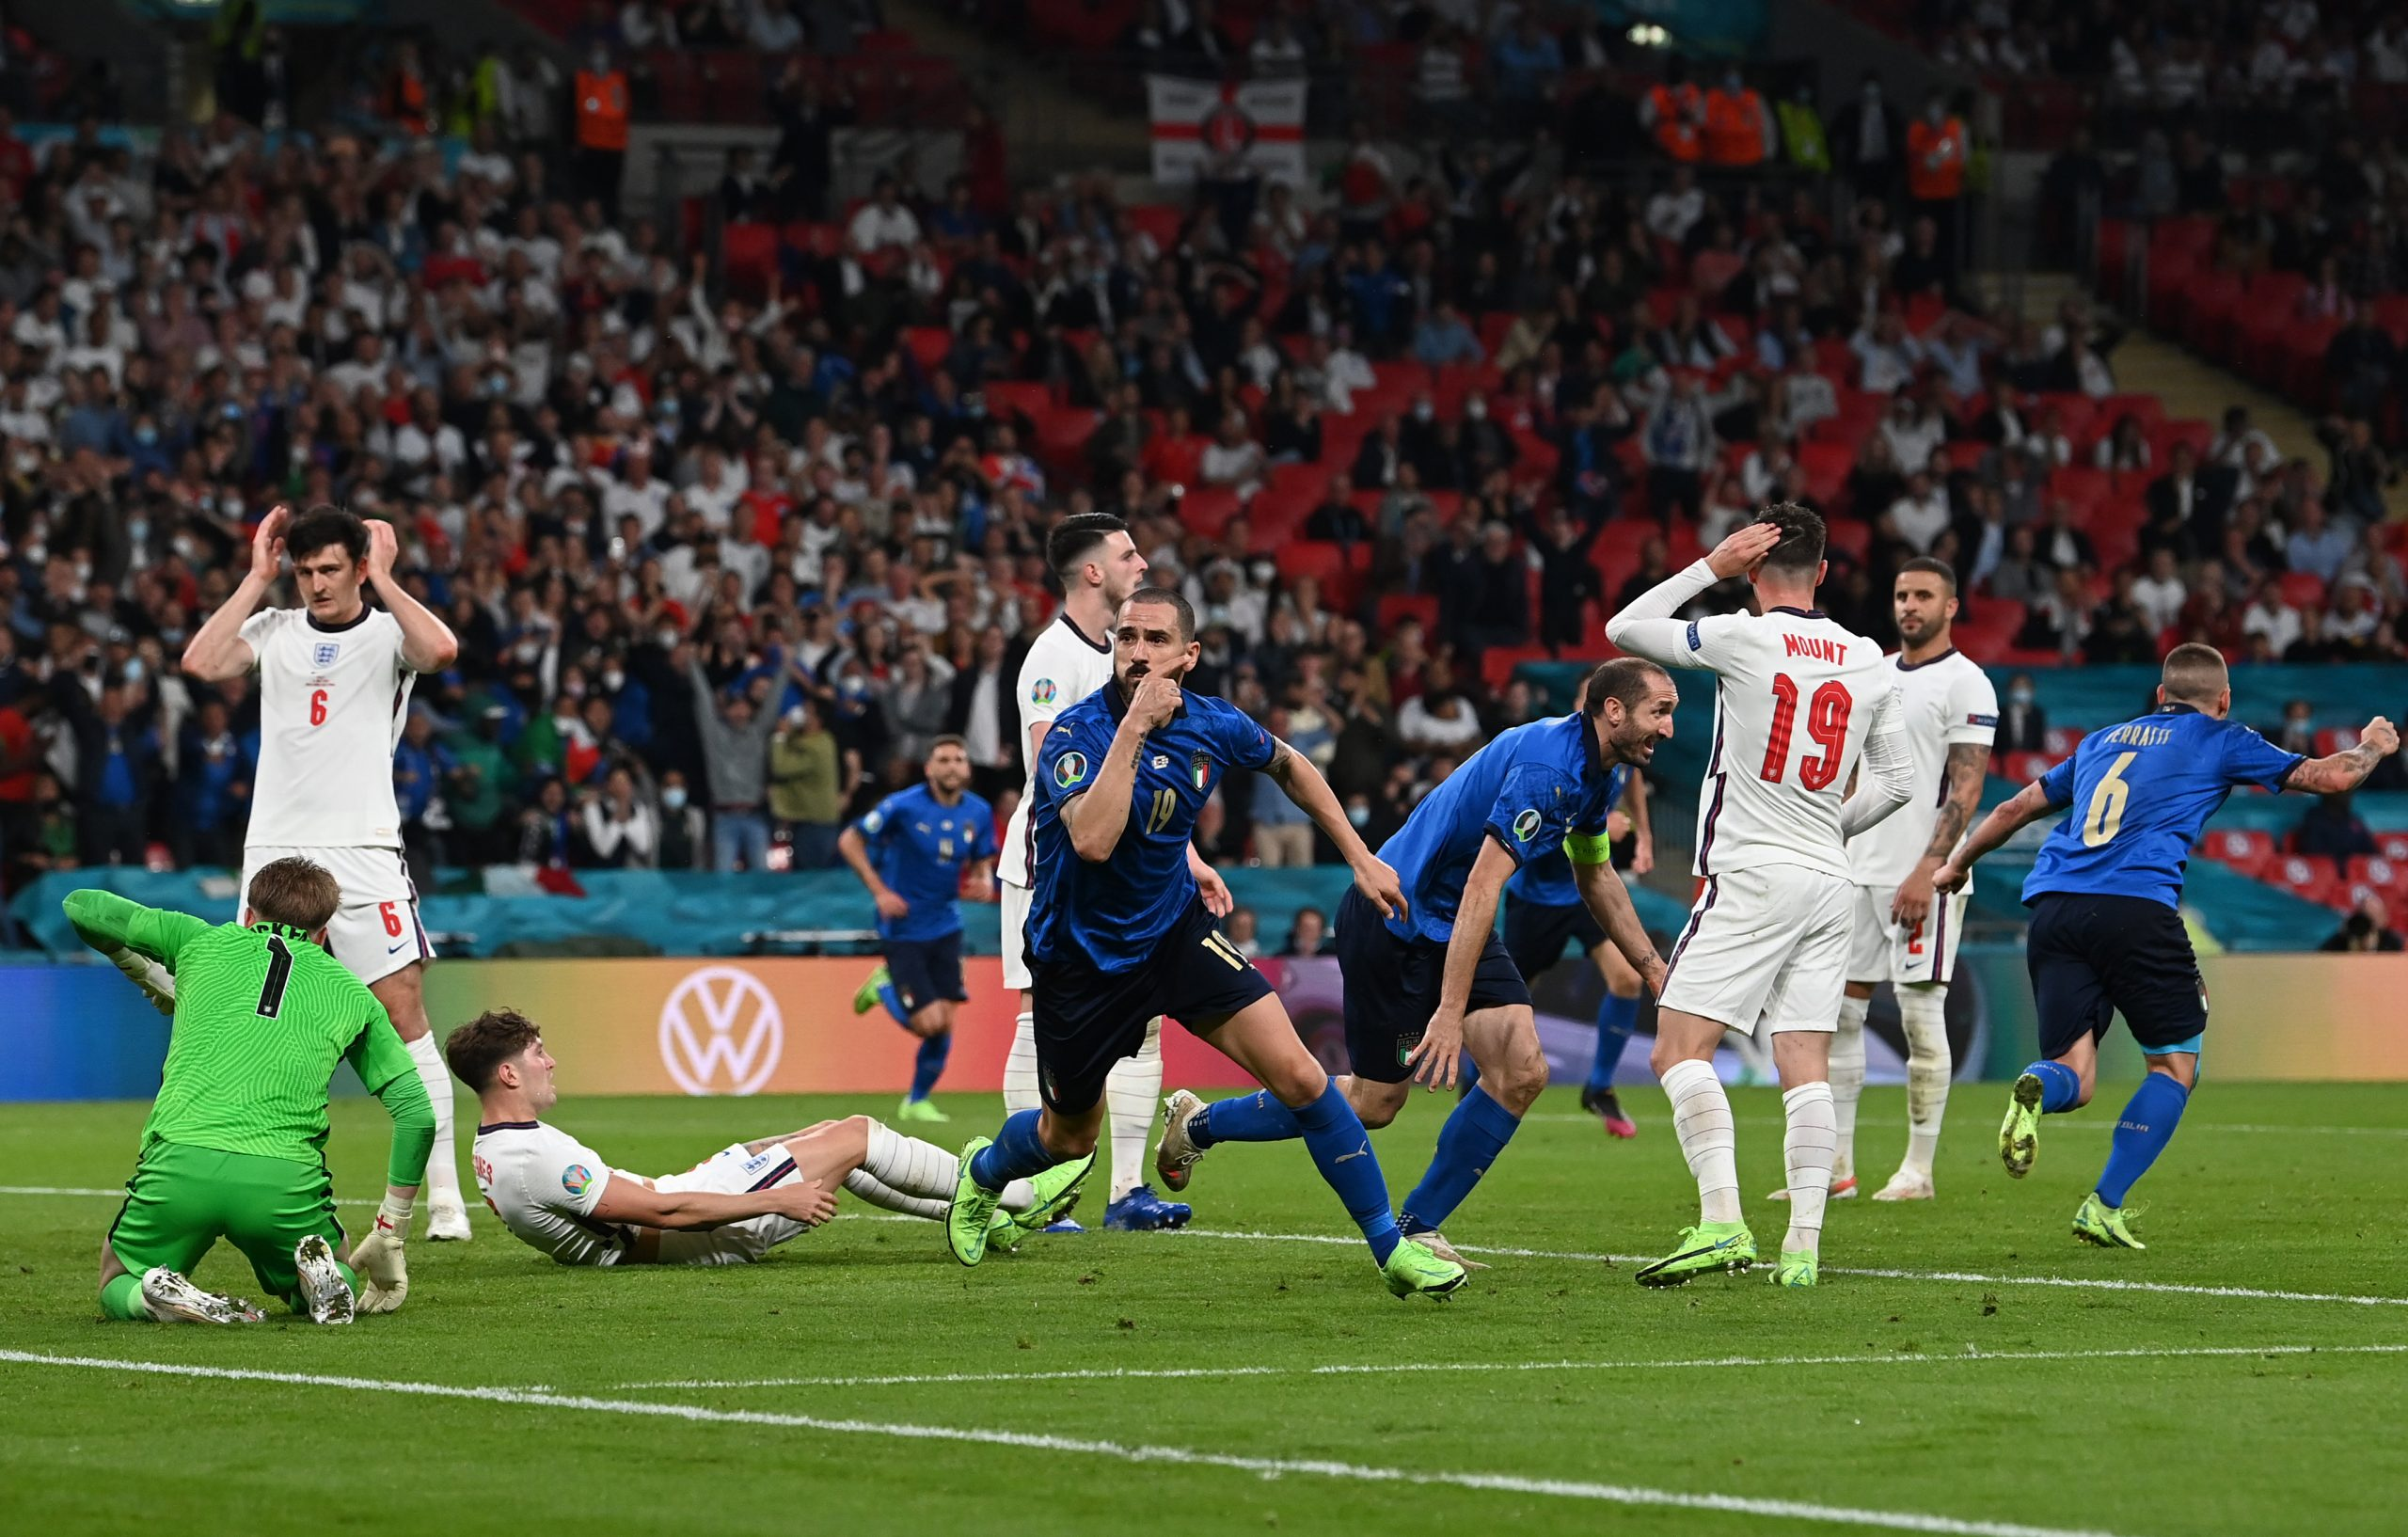 The Data Day No. 22: Your Euro 2020 Italy Was Not Your Father's Italy